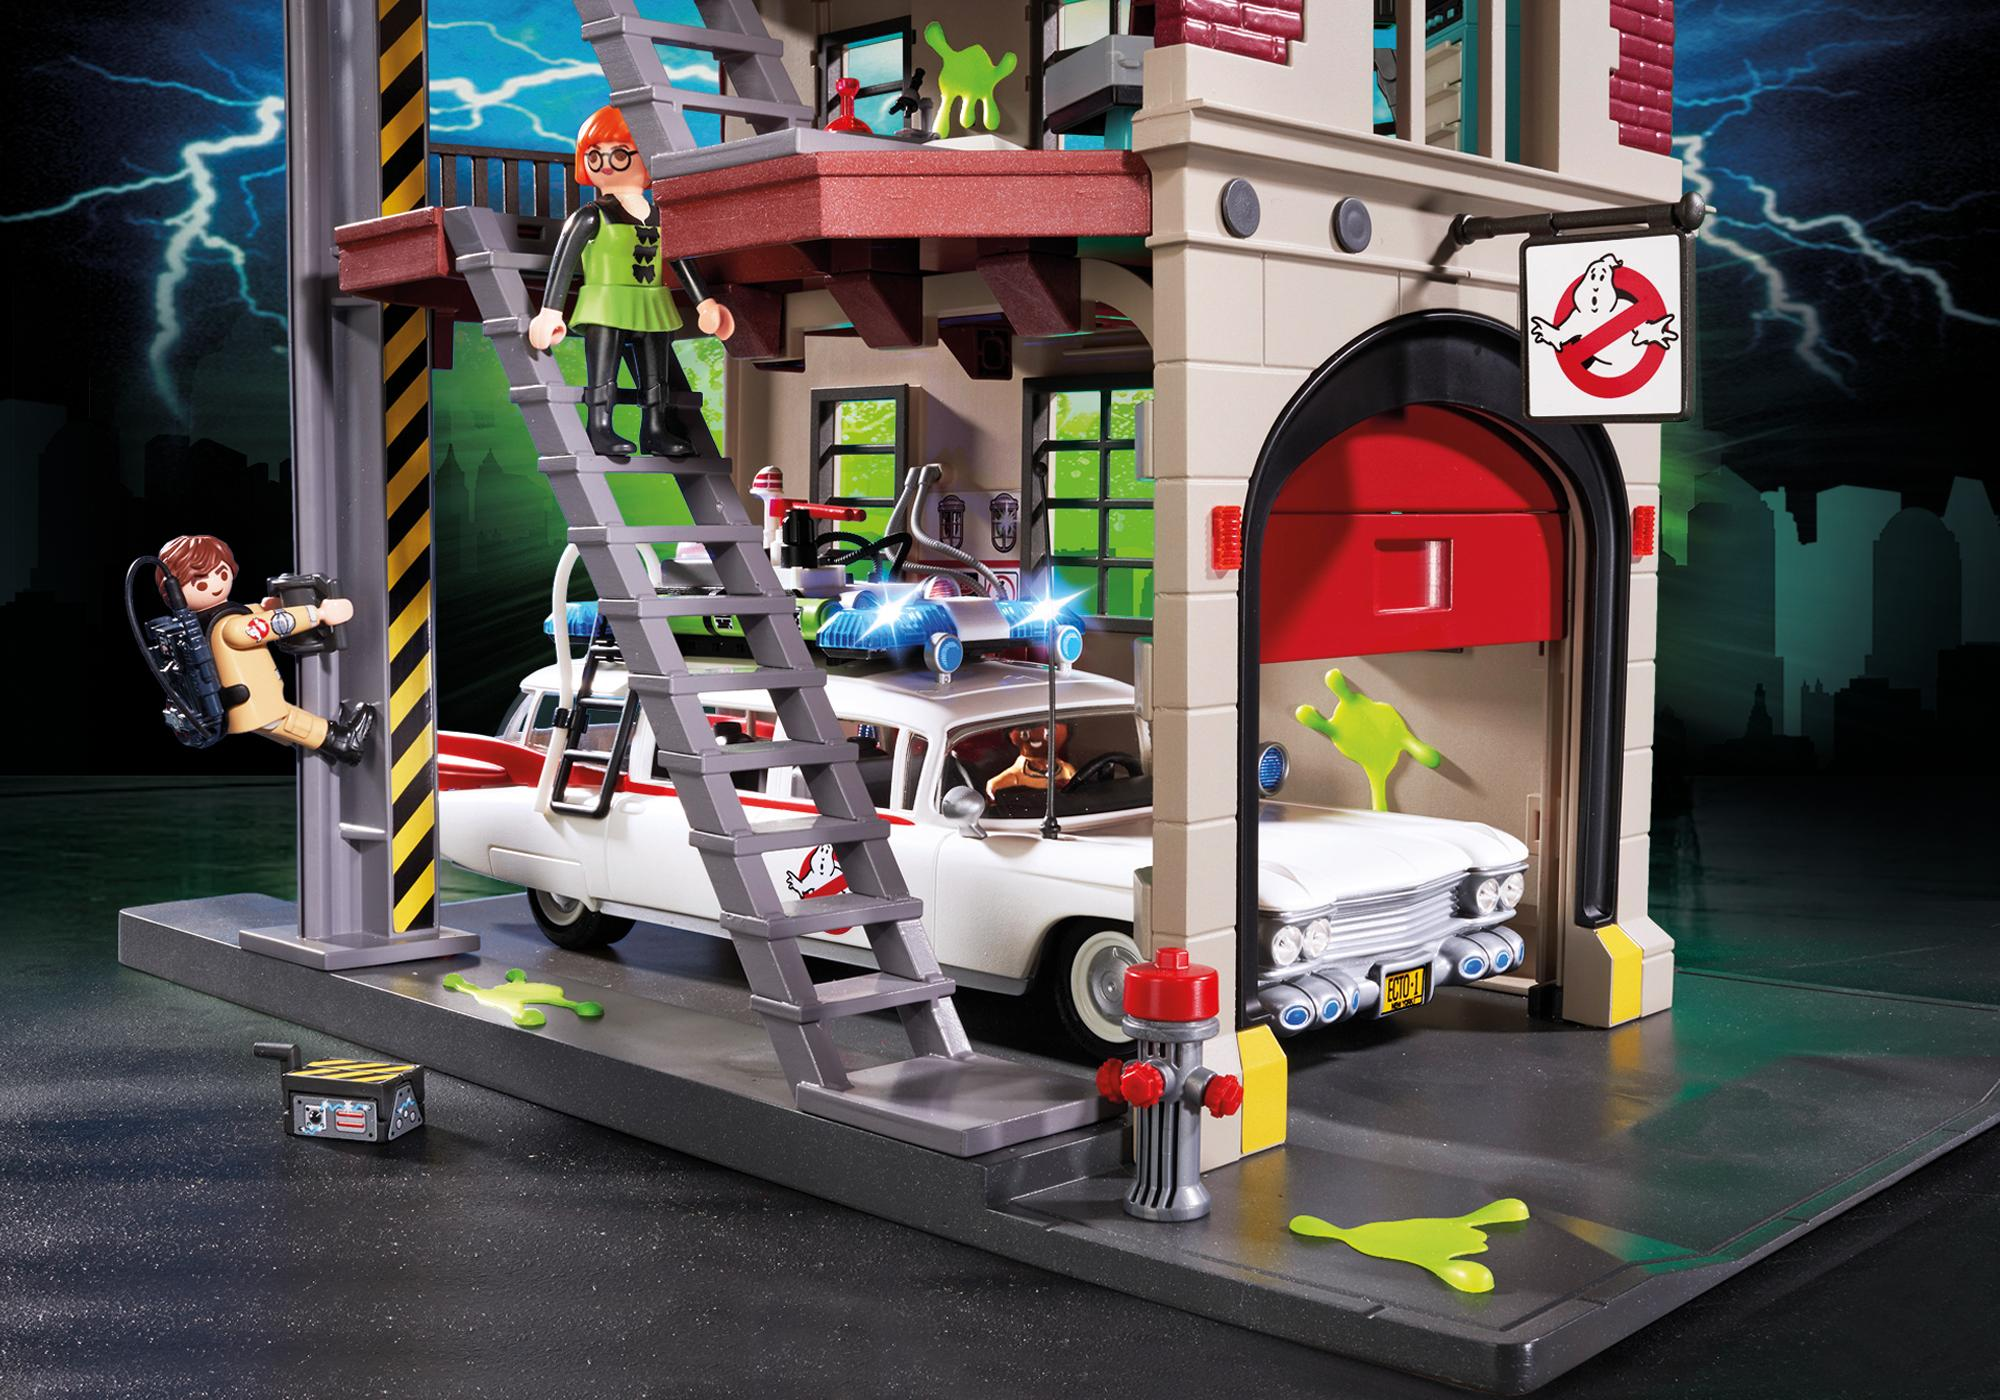 http://media.playmobil.com/i/playmobil/9219_product_extra2?locale=en-GB,en,*&$pdp_product_main_l$